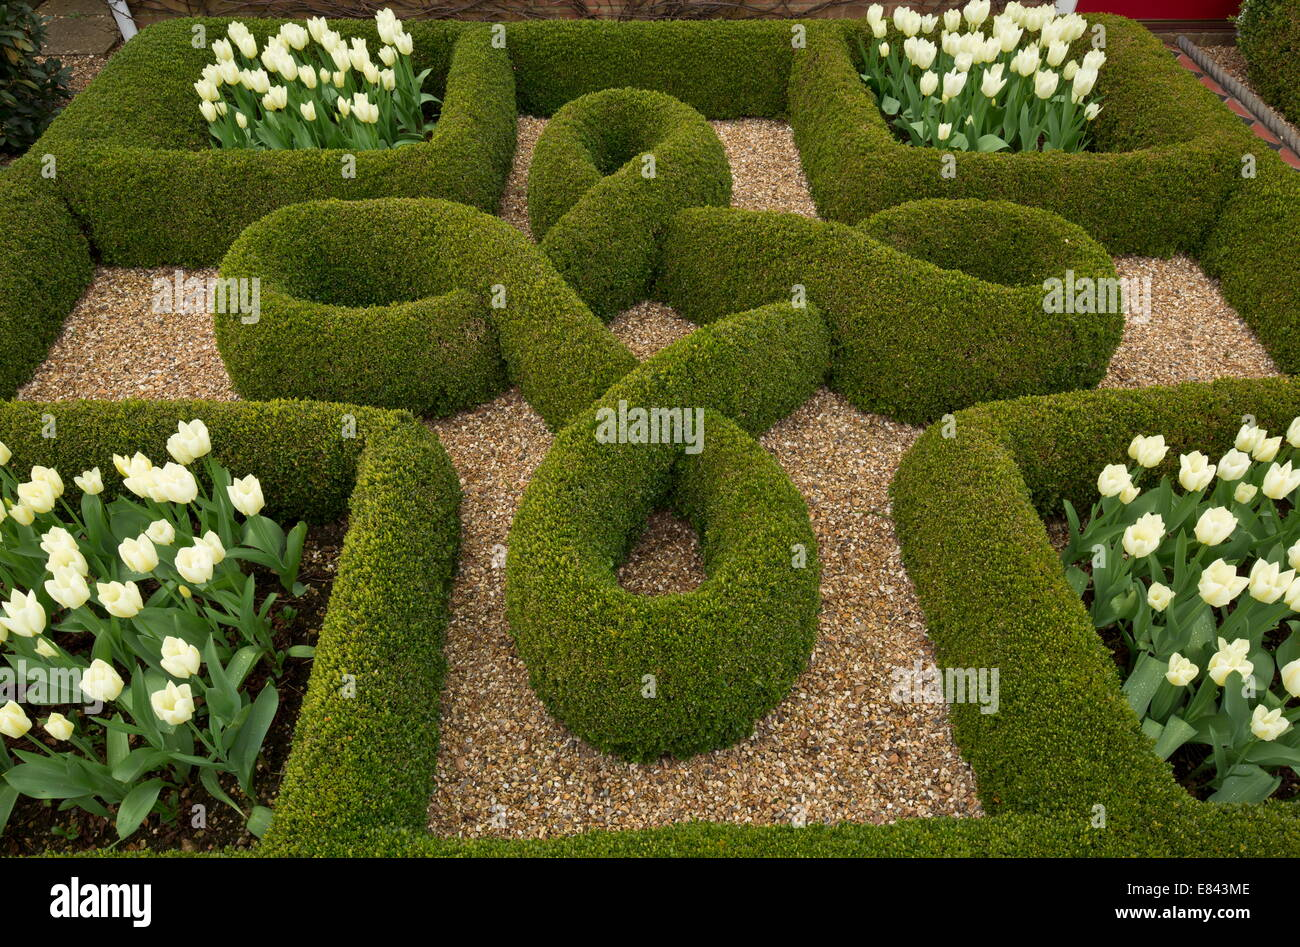 Knot garden with box hedges and white tulips in a private garden in